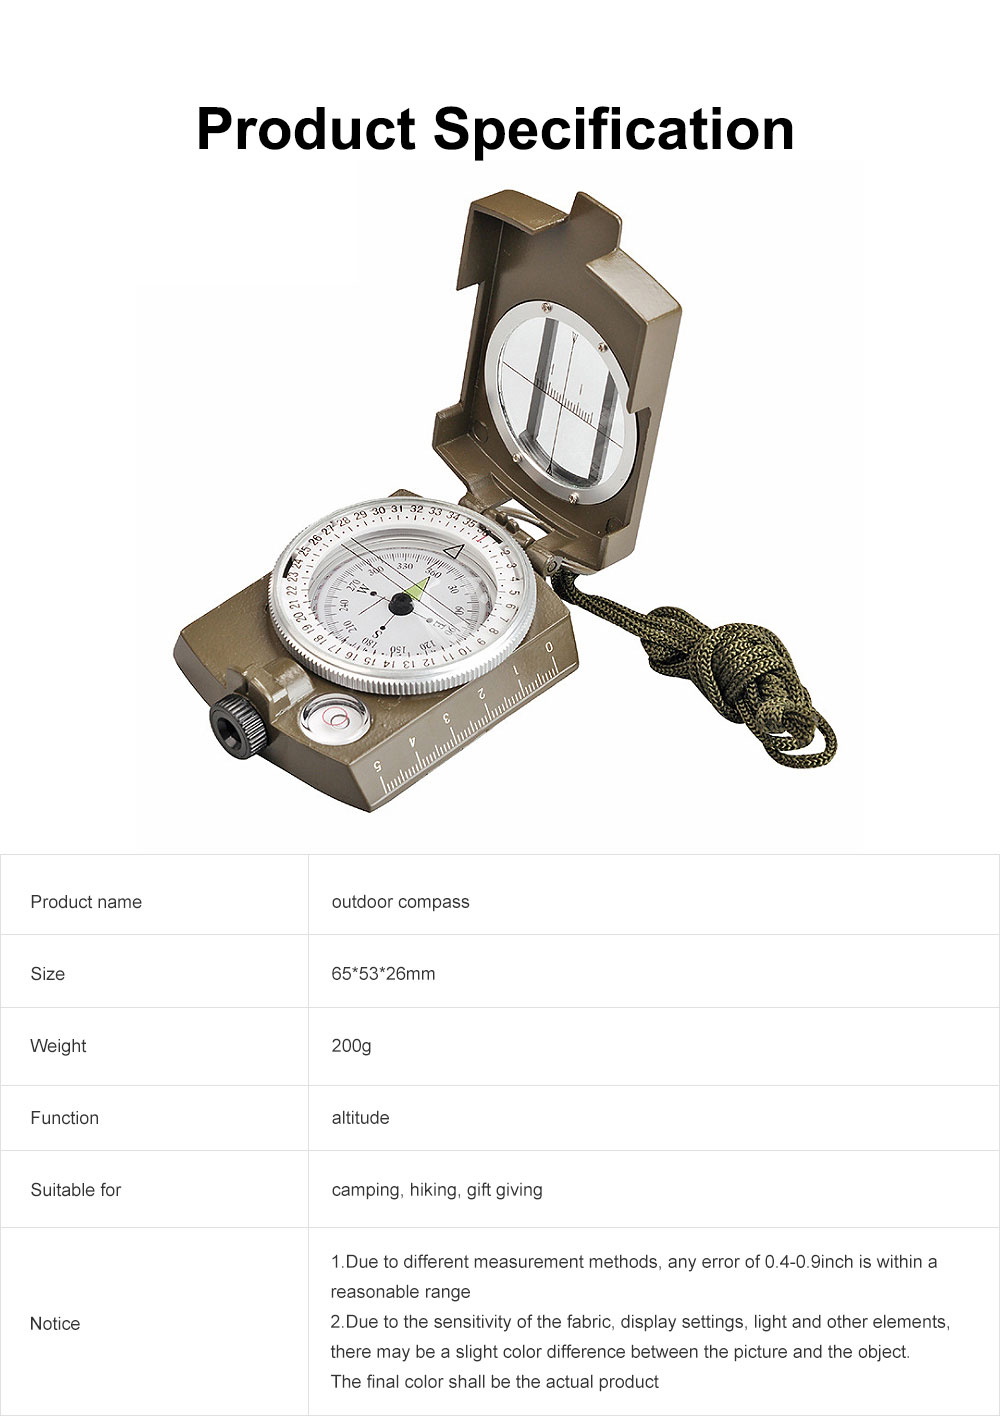 Outdoor Compass for Hiking, Camping, Portable Compass Metal Sighting Navigation with Magnifier Inclinometer Ruler, Luminous Compass 6